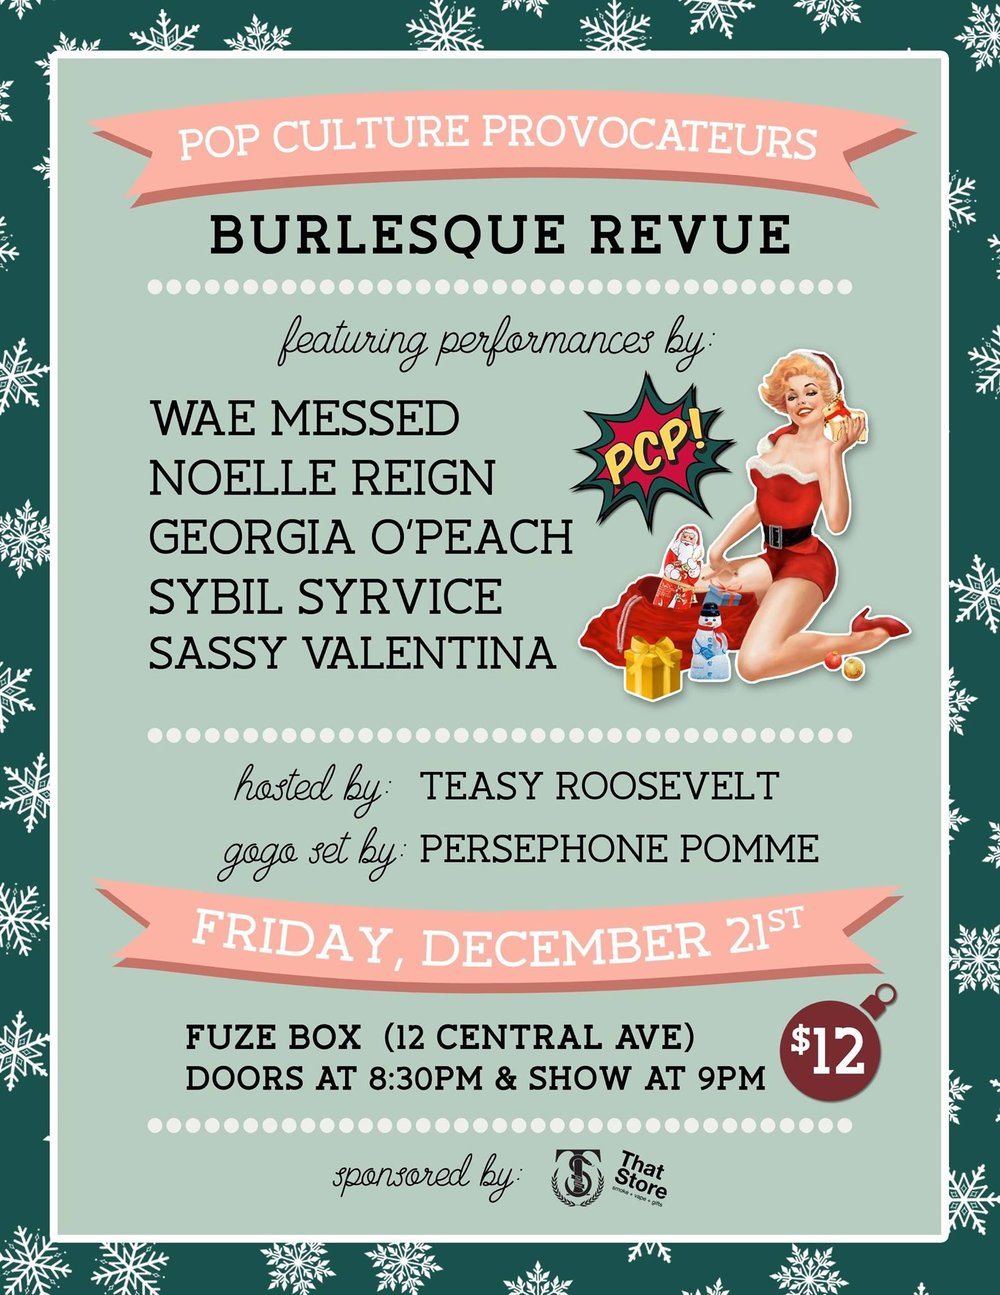 - Celebrate the holiday season with Pop Culture Provocateurs! We are bringing you a burlesque show to write home about, featuring performances by...WAE MESSEDGEORGIA O'PEACHNOELLE REIGNSYBIL SYRVICESASSY VALENTINAWith your host, TEASY ROOSEVELT!Gogo set by our stage kitten, PERSEPHONE POMME!FRIDAY, DECEMBER 21STFUZE BOX12 CENTRAL AVE830 PM DOORS // 9PM SHOW$12 AT THE DOORSponsored by That Store !